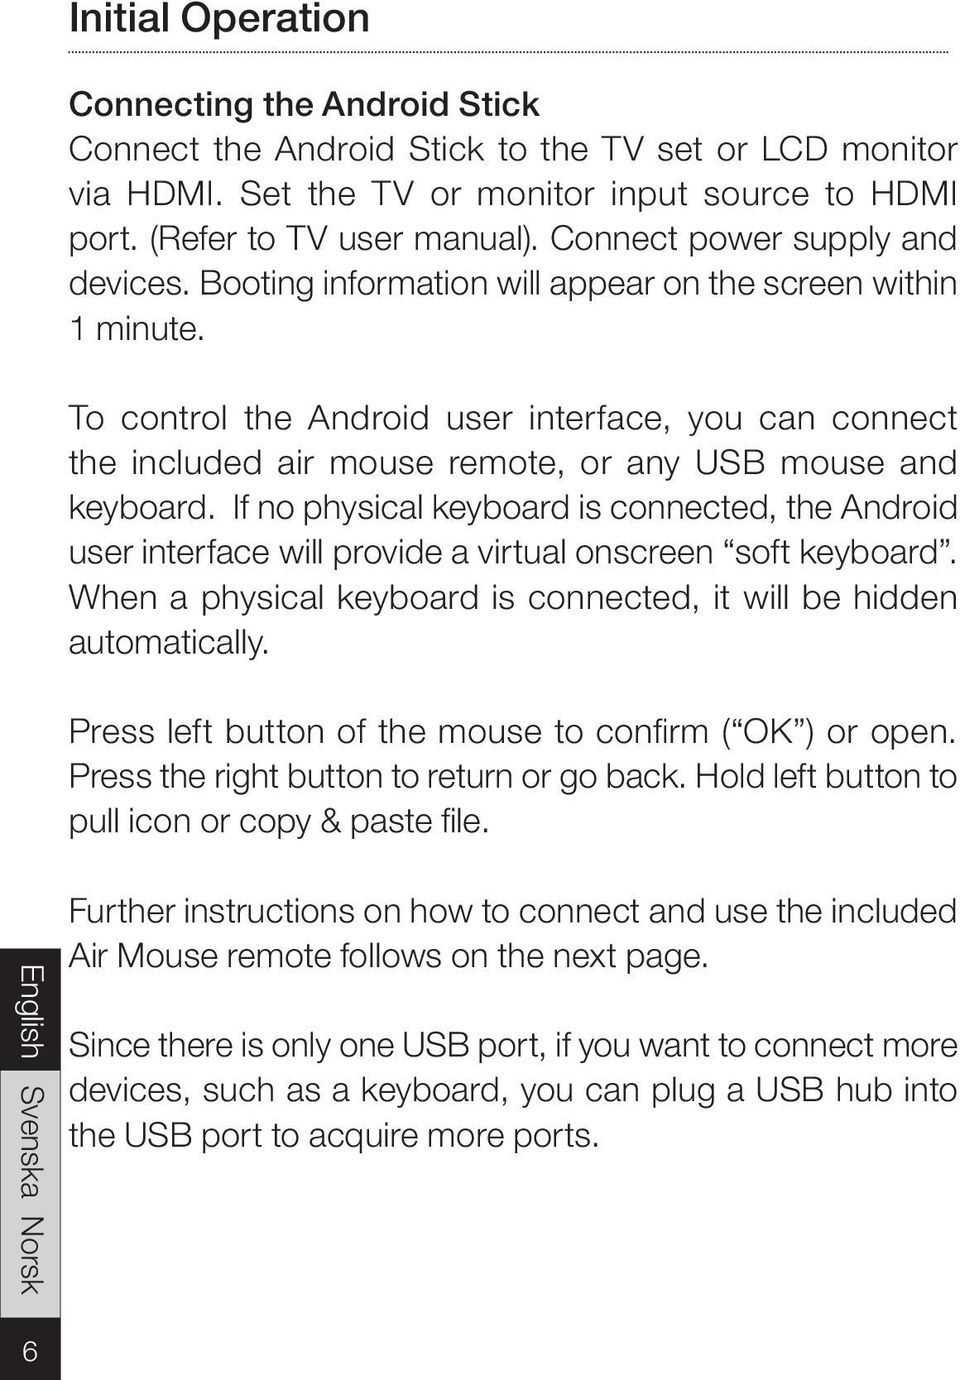 To control the Android user interface, you can connect the included air mouse remote, or any USB mouse and keyboard.